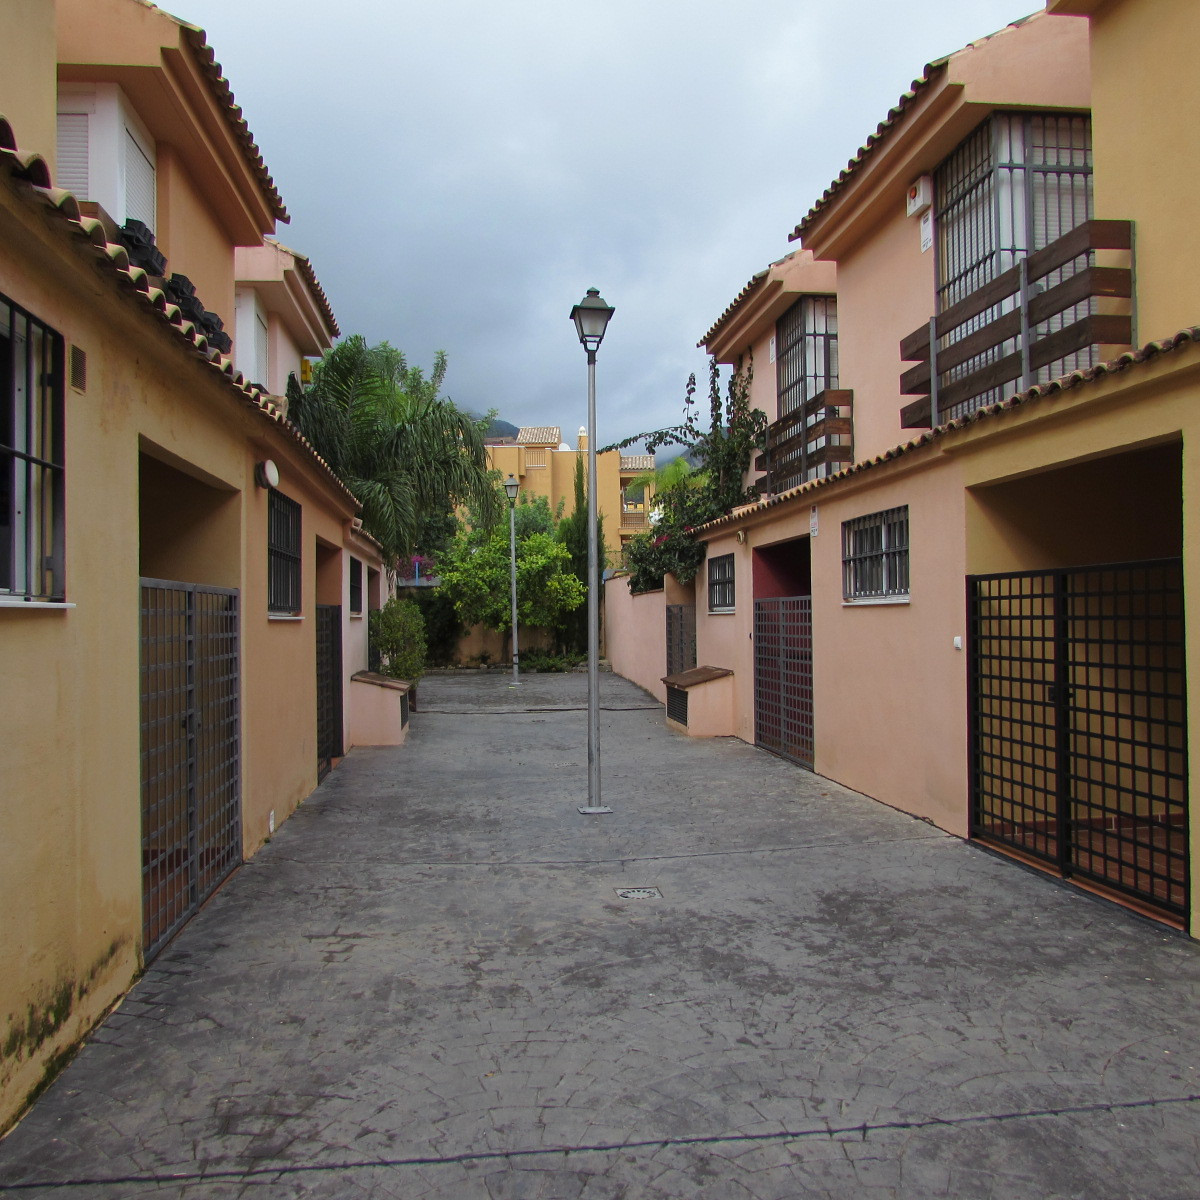 Banking Deal! House in magnificent area of Marbella, San Miguel, to reform !. A few years and a few ,Spain